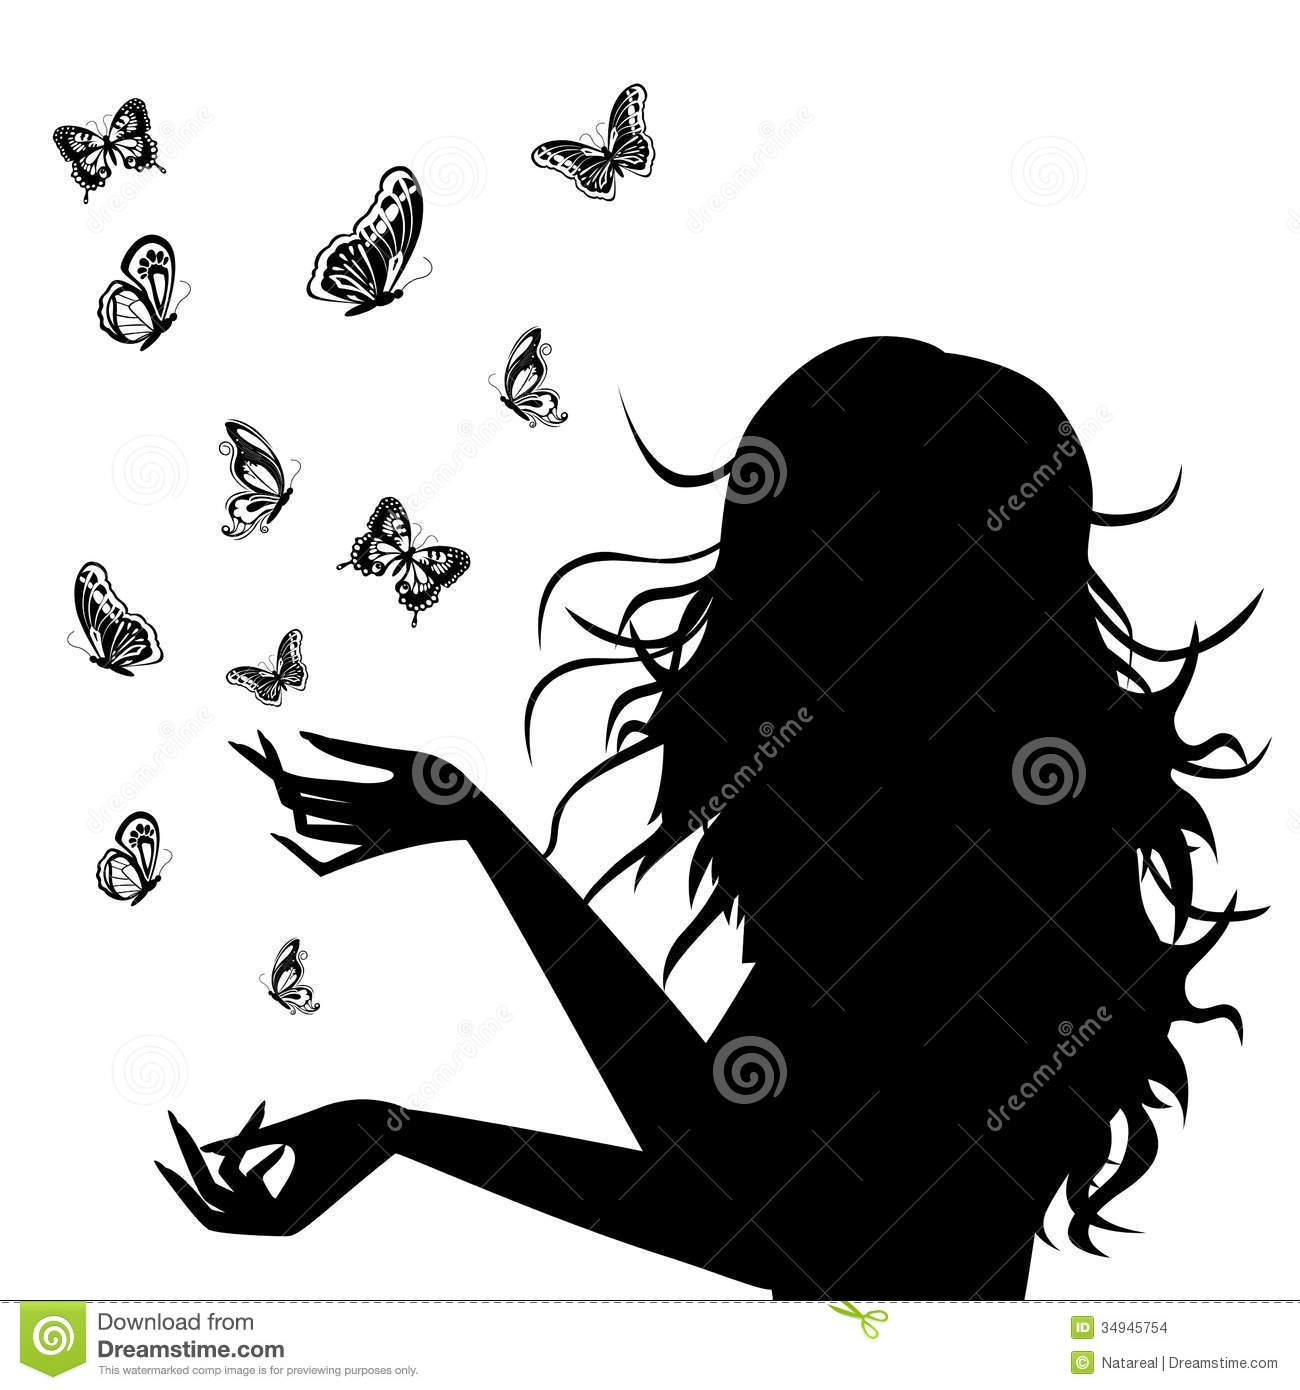 woman silhouette with butterflies around her stock images image